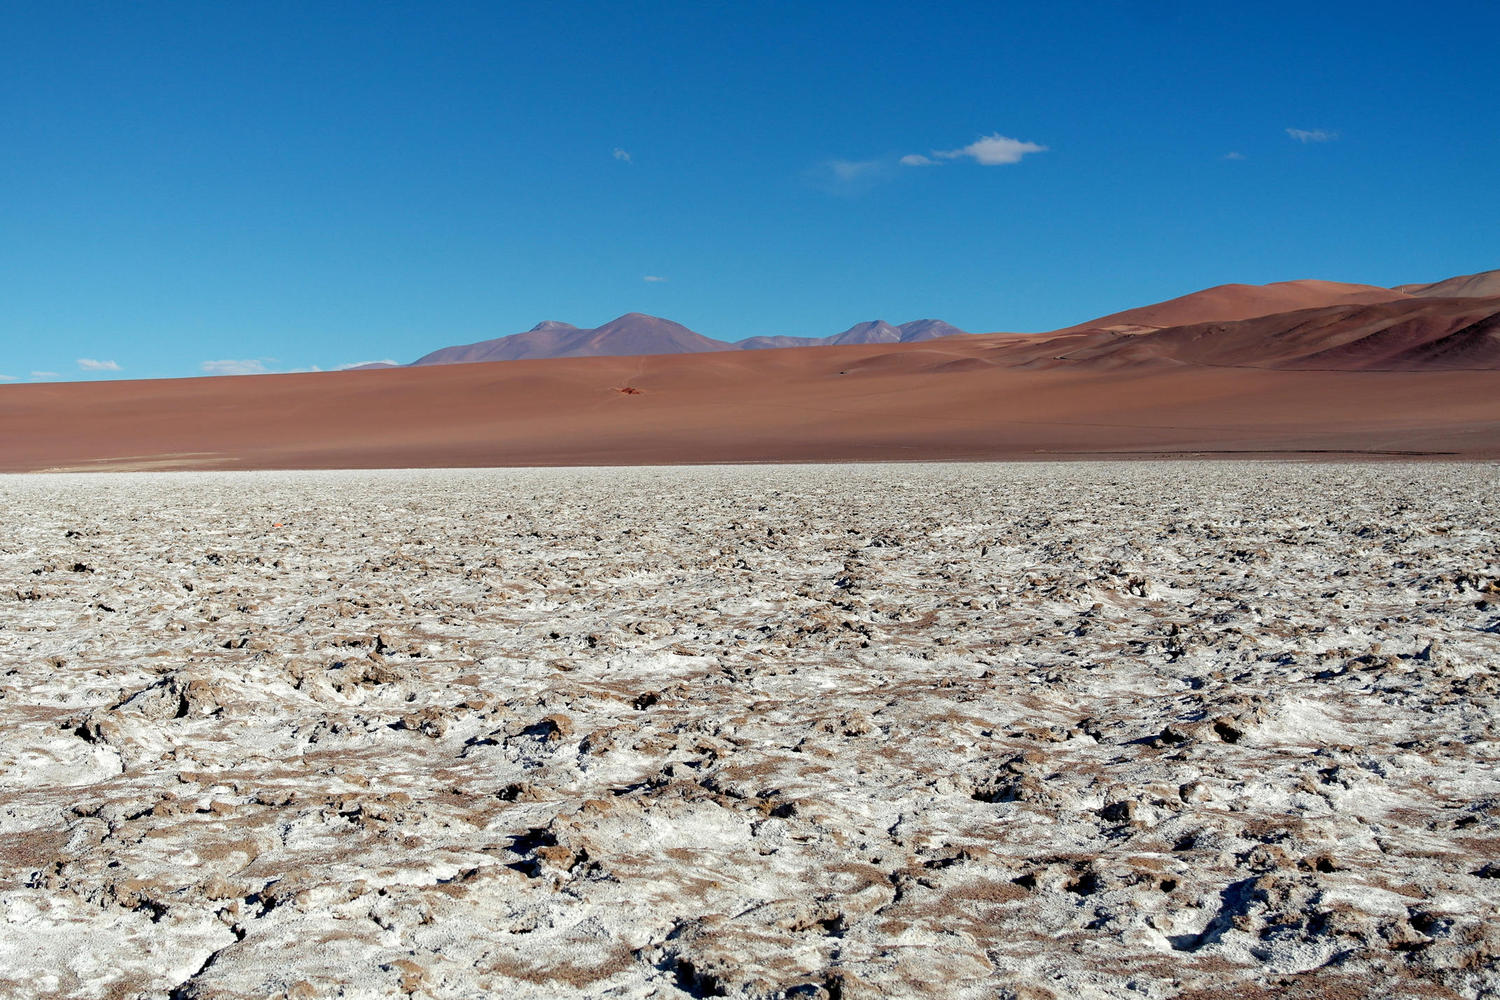 The salt flats of Argentina's puna